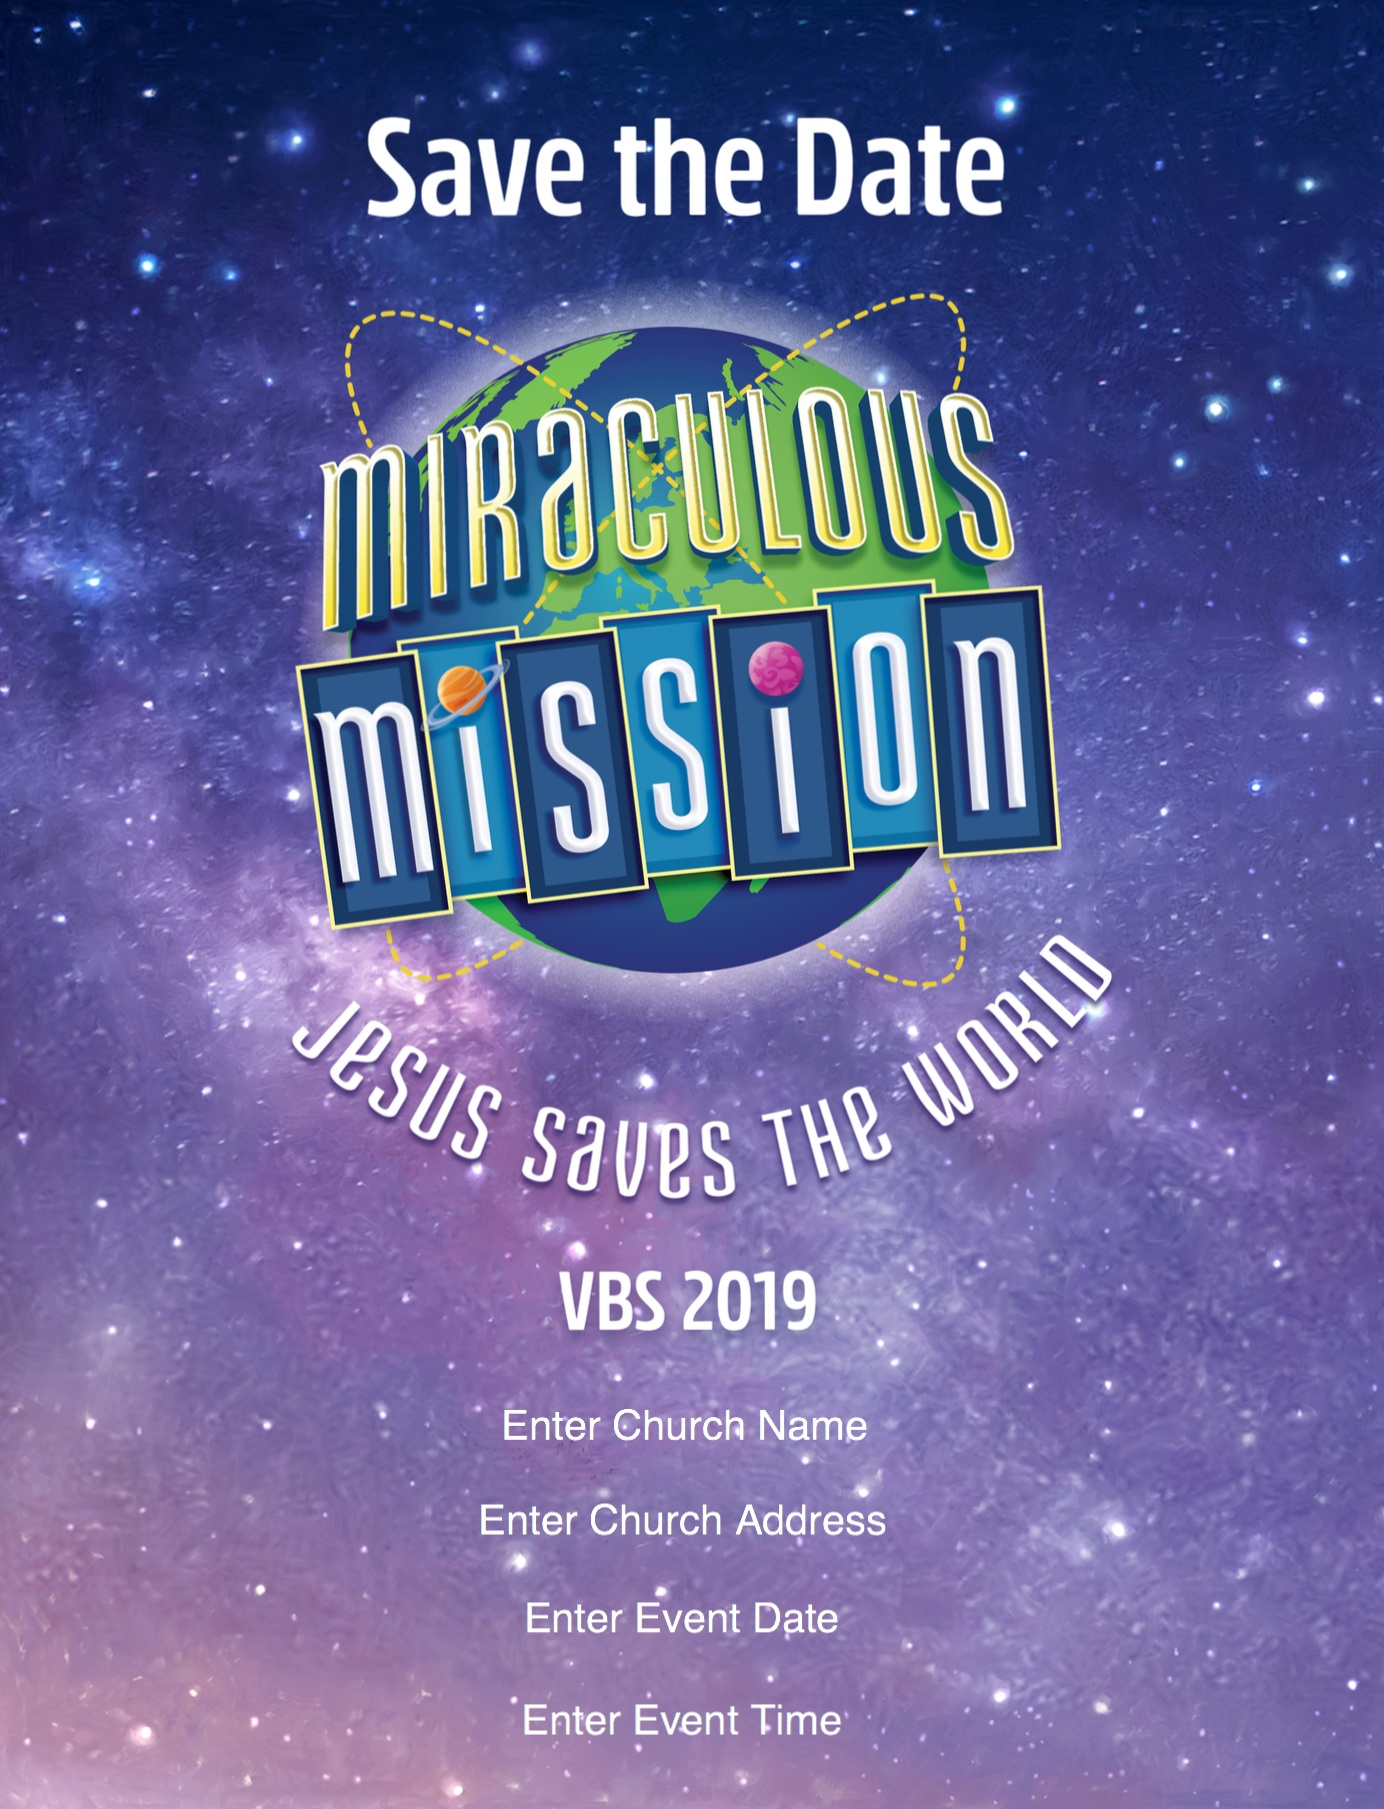 Miraculous Mission Save the Date Flyer